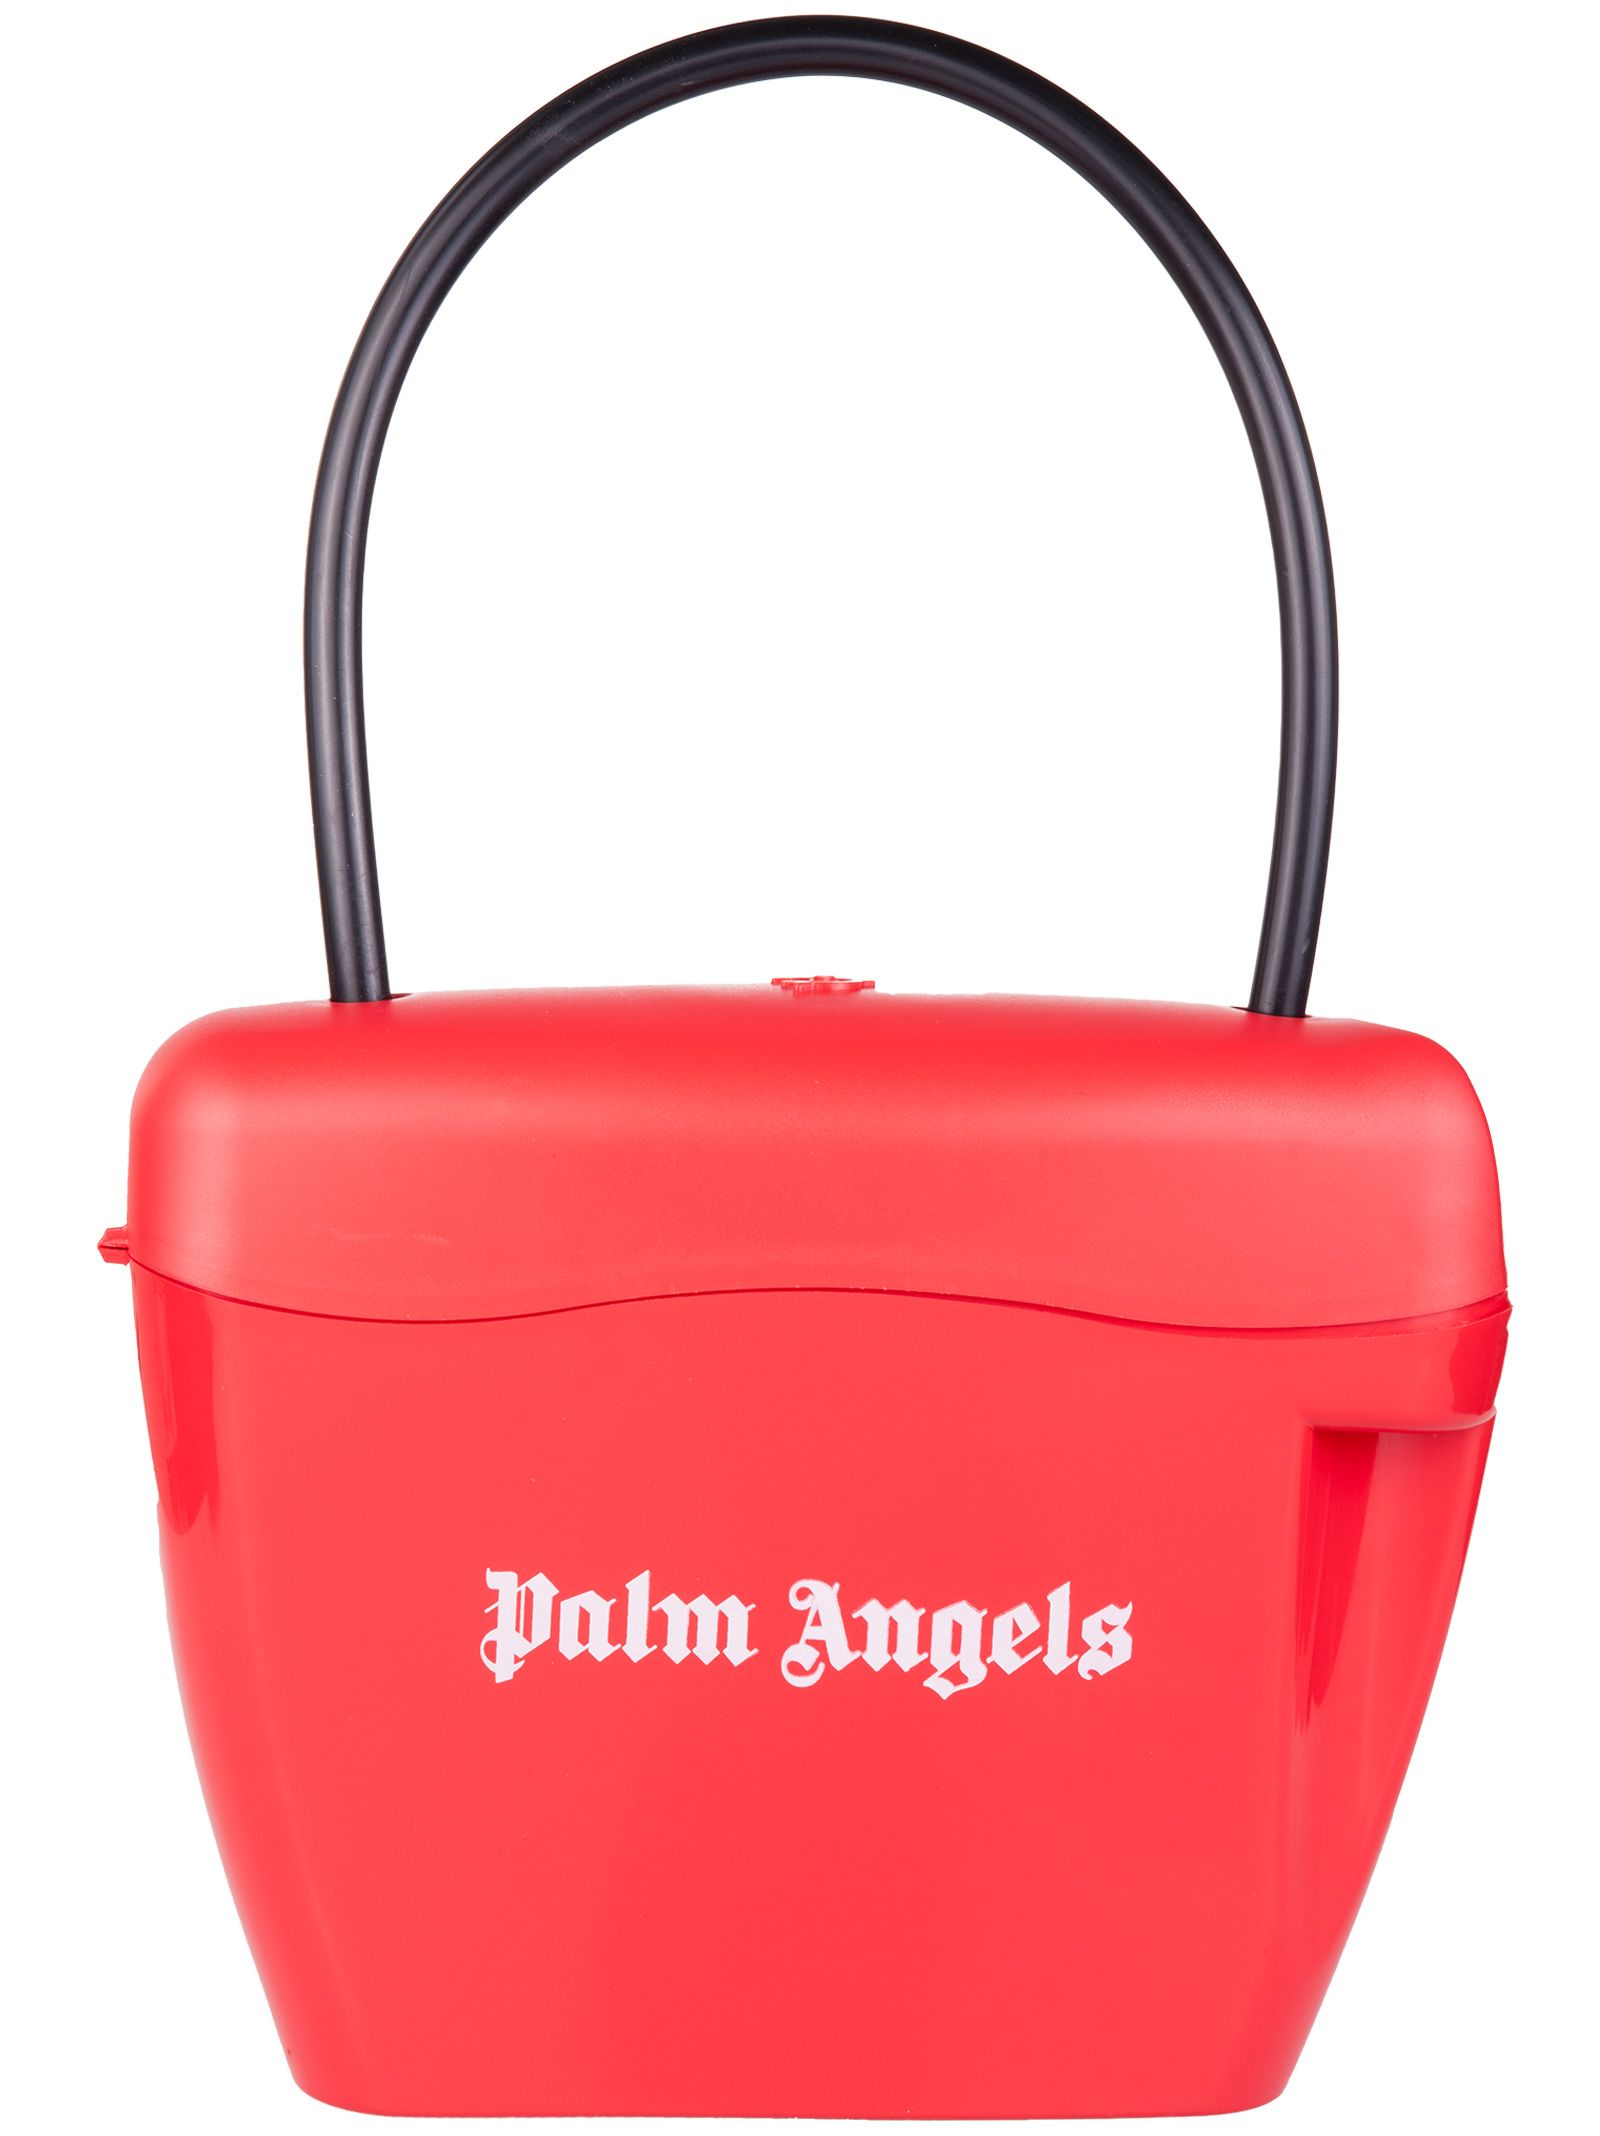 printed logo tote bag - Red Palm Angels HXDLokcZm